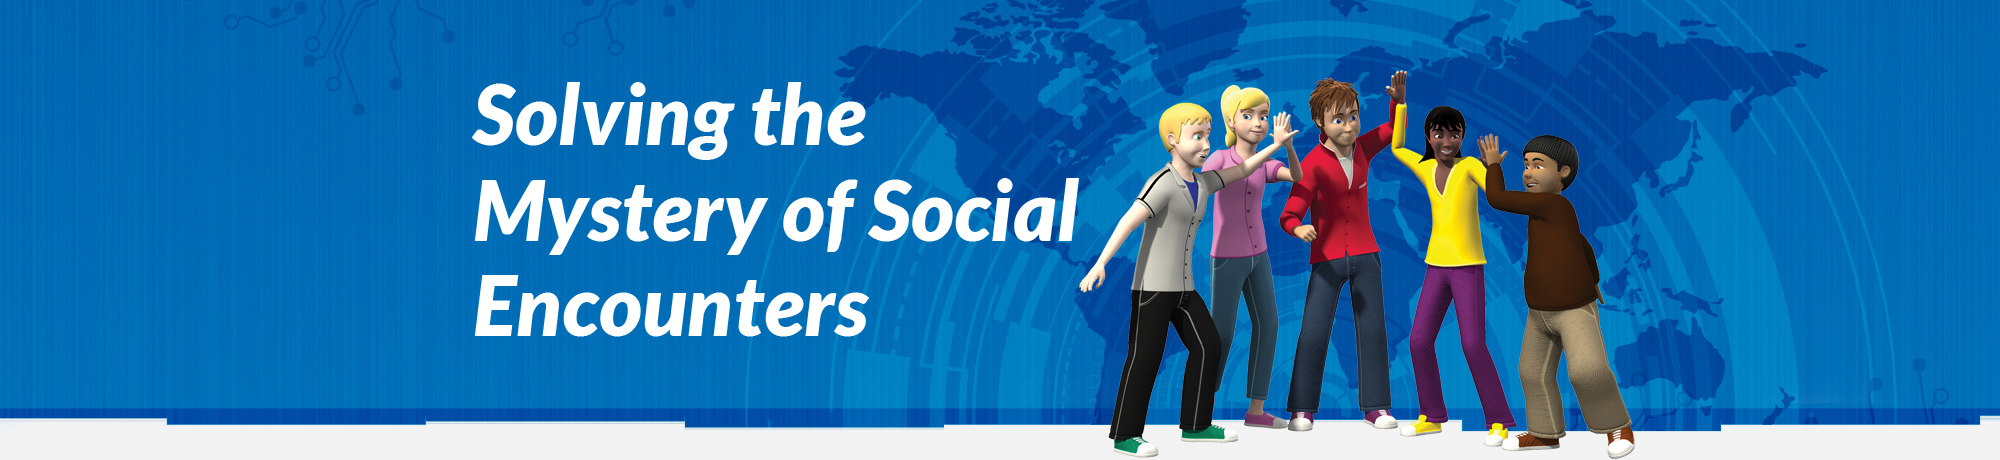 Solving the Mystery of Social Encounters